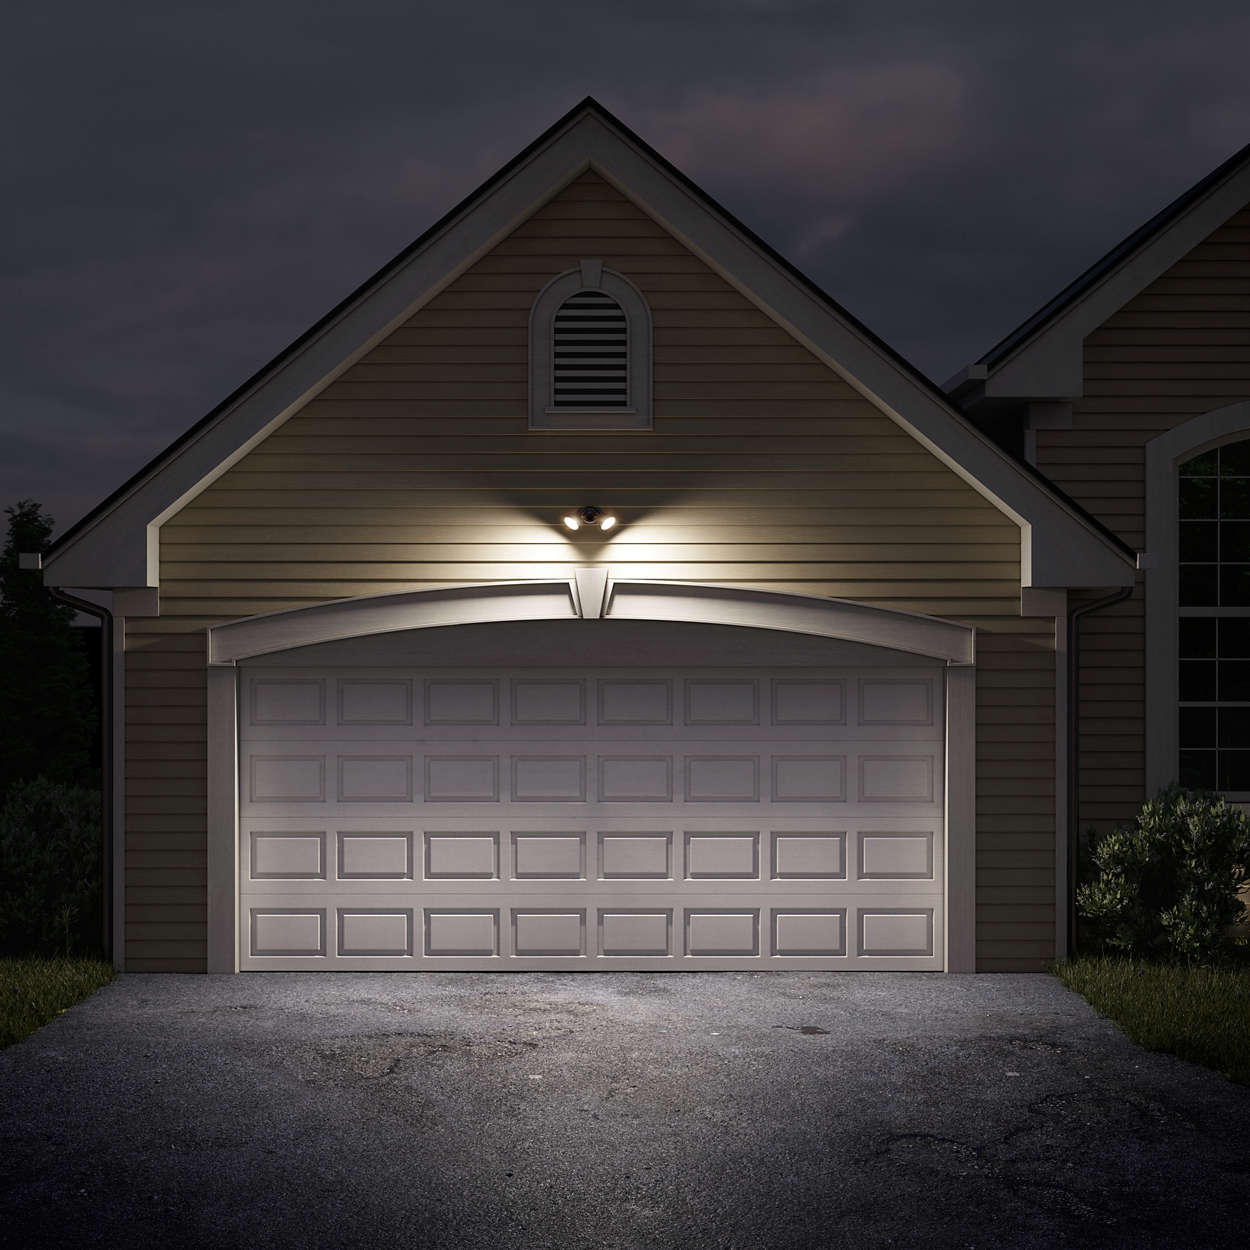 philips-hue-ludere-outdoor-security-light